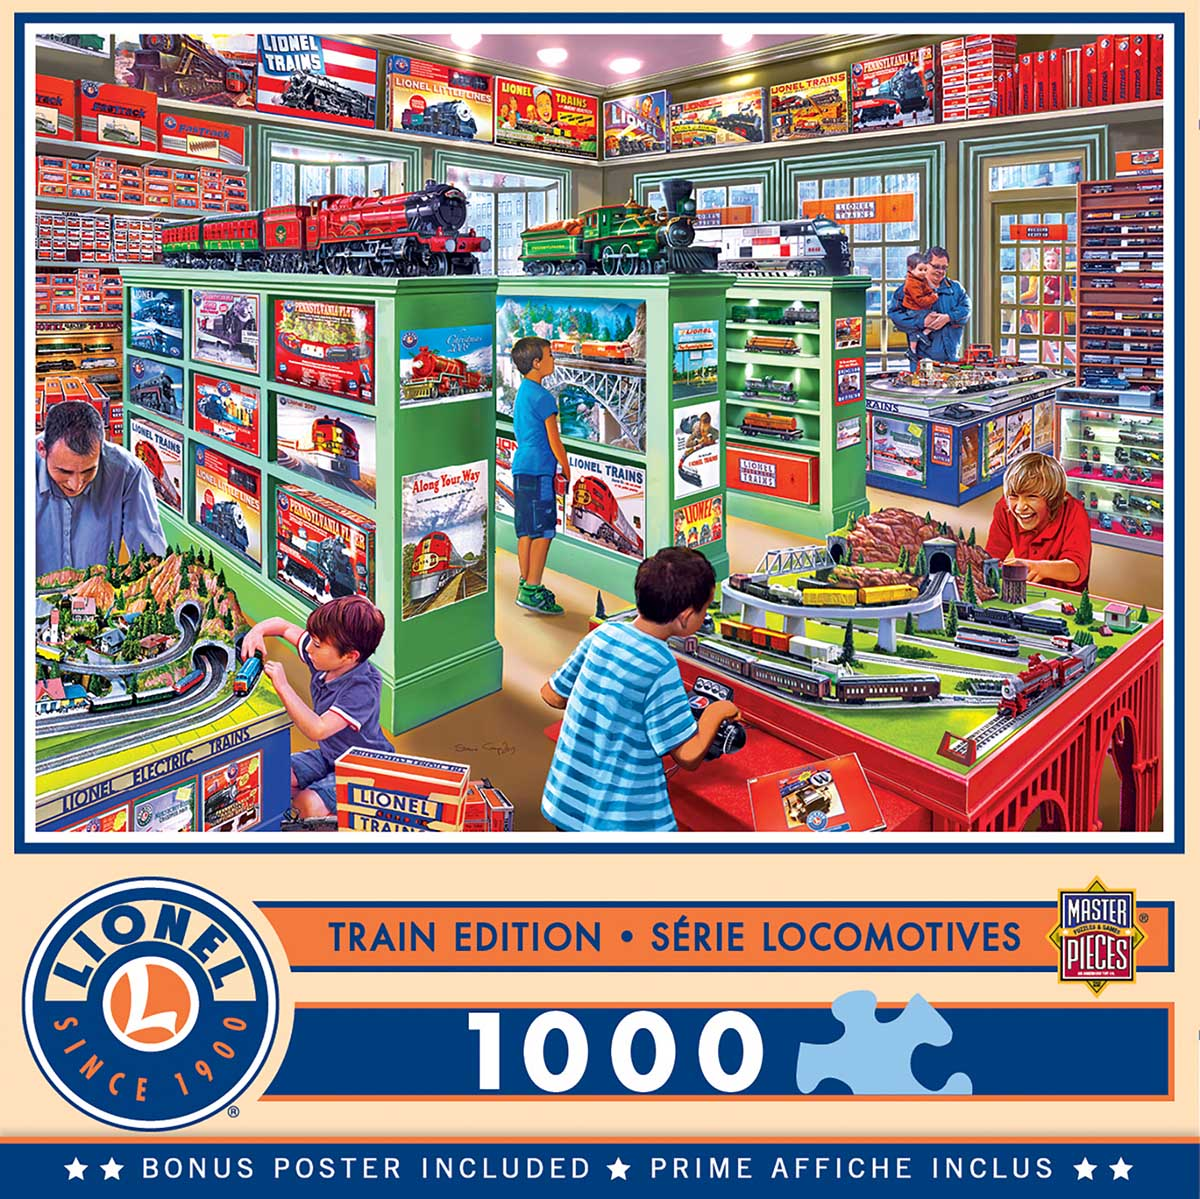 The Lionel Store Trains Jigsaw Puzzle